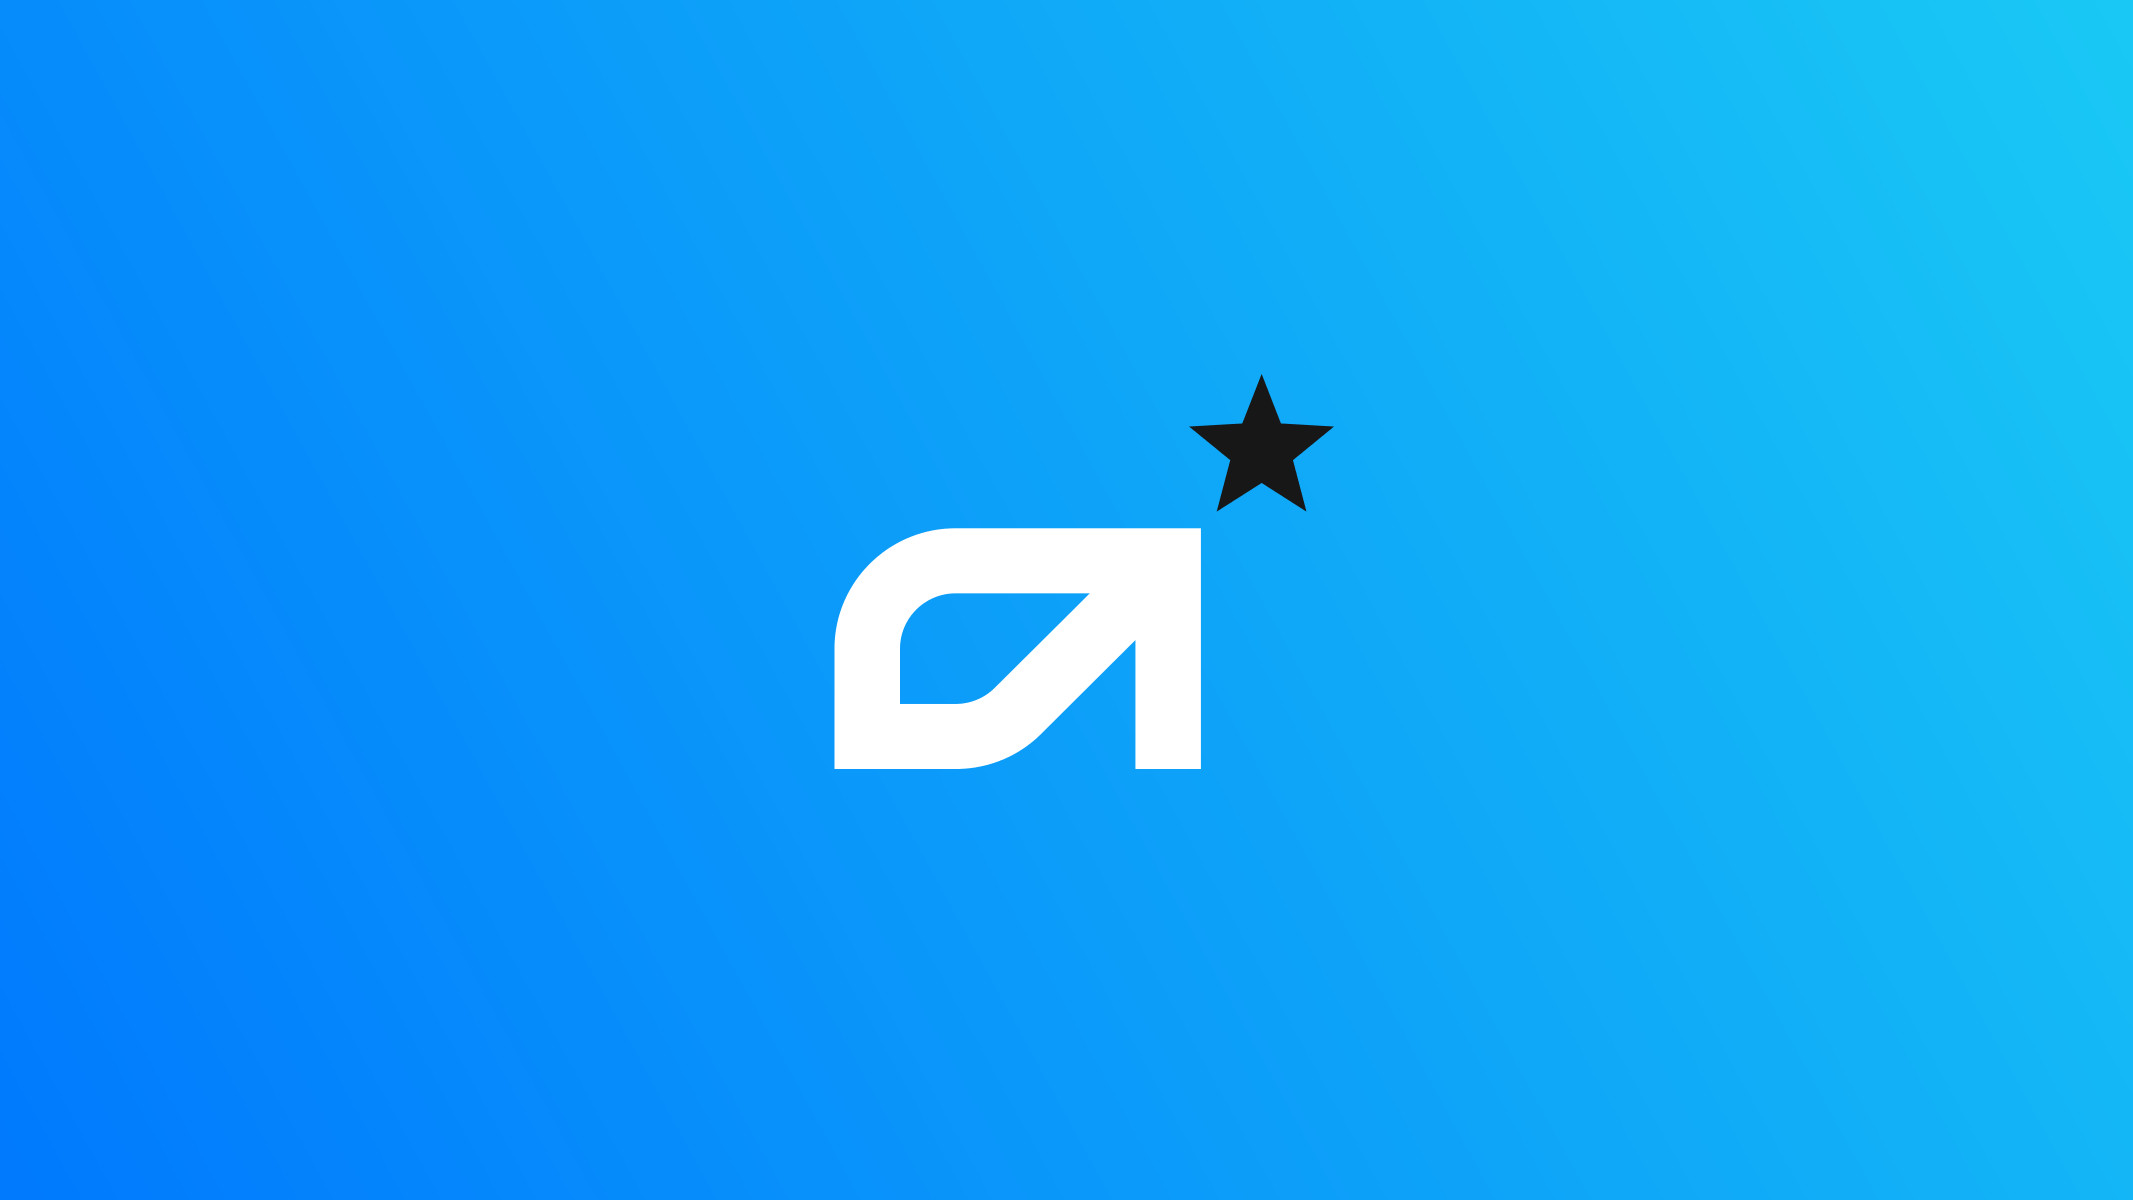 Astro Gaming Wallpapers – chaotic.